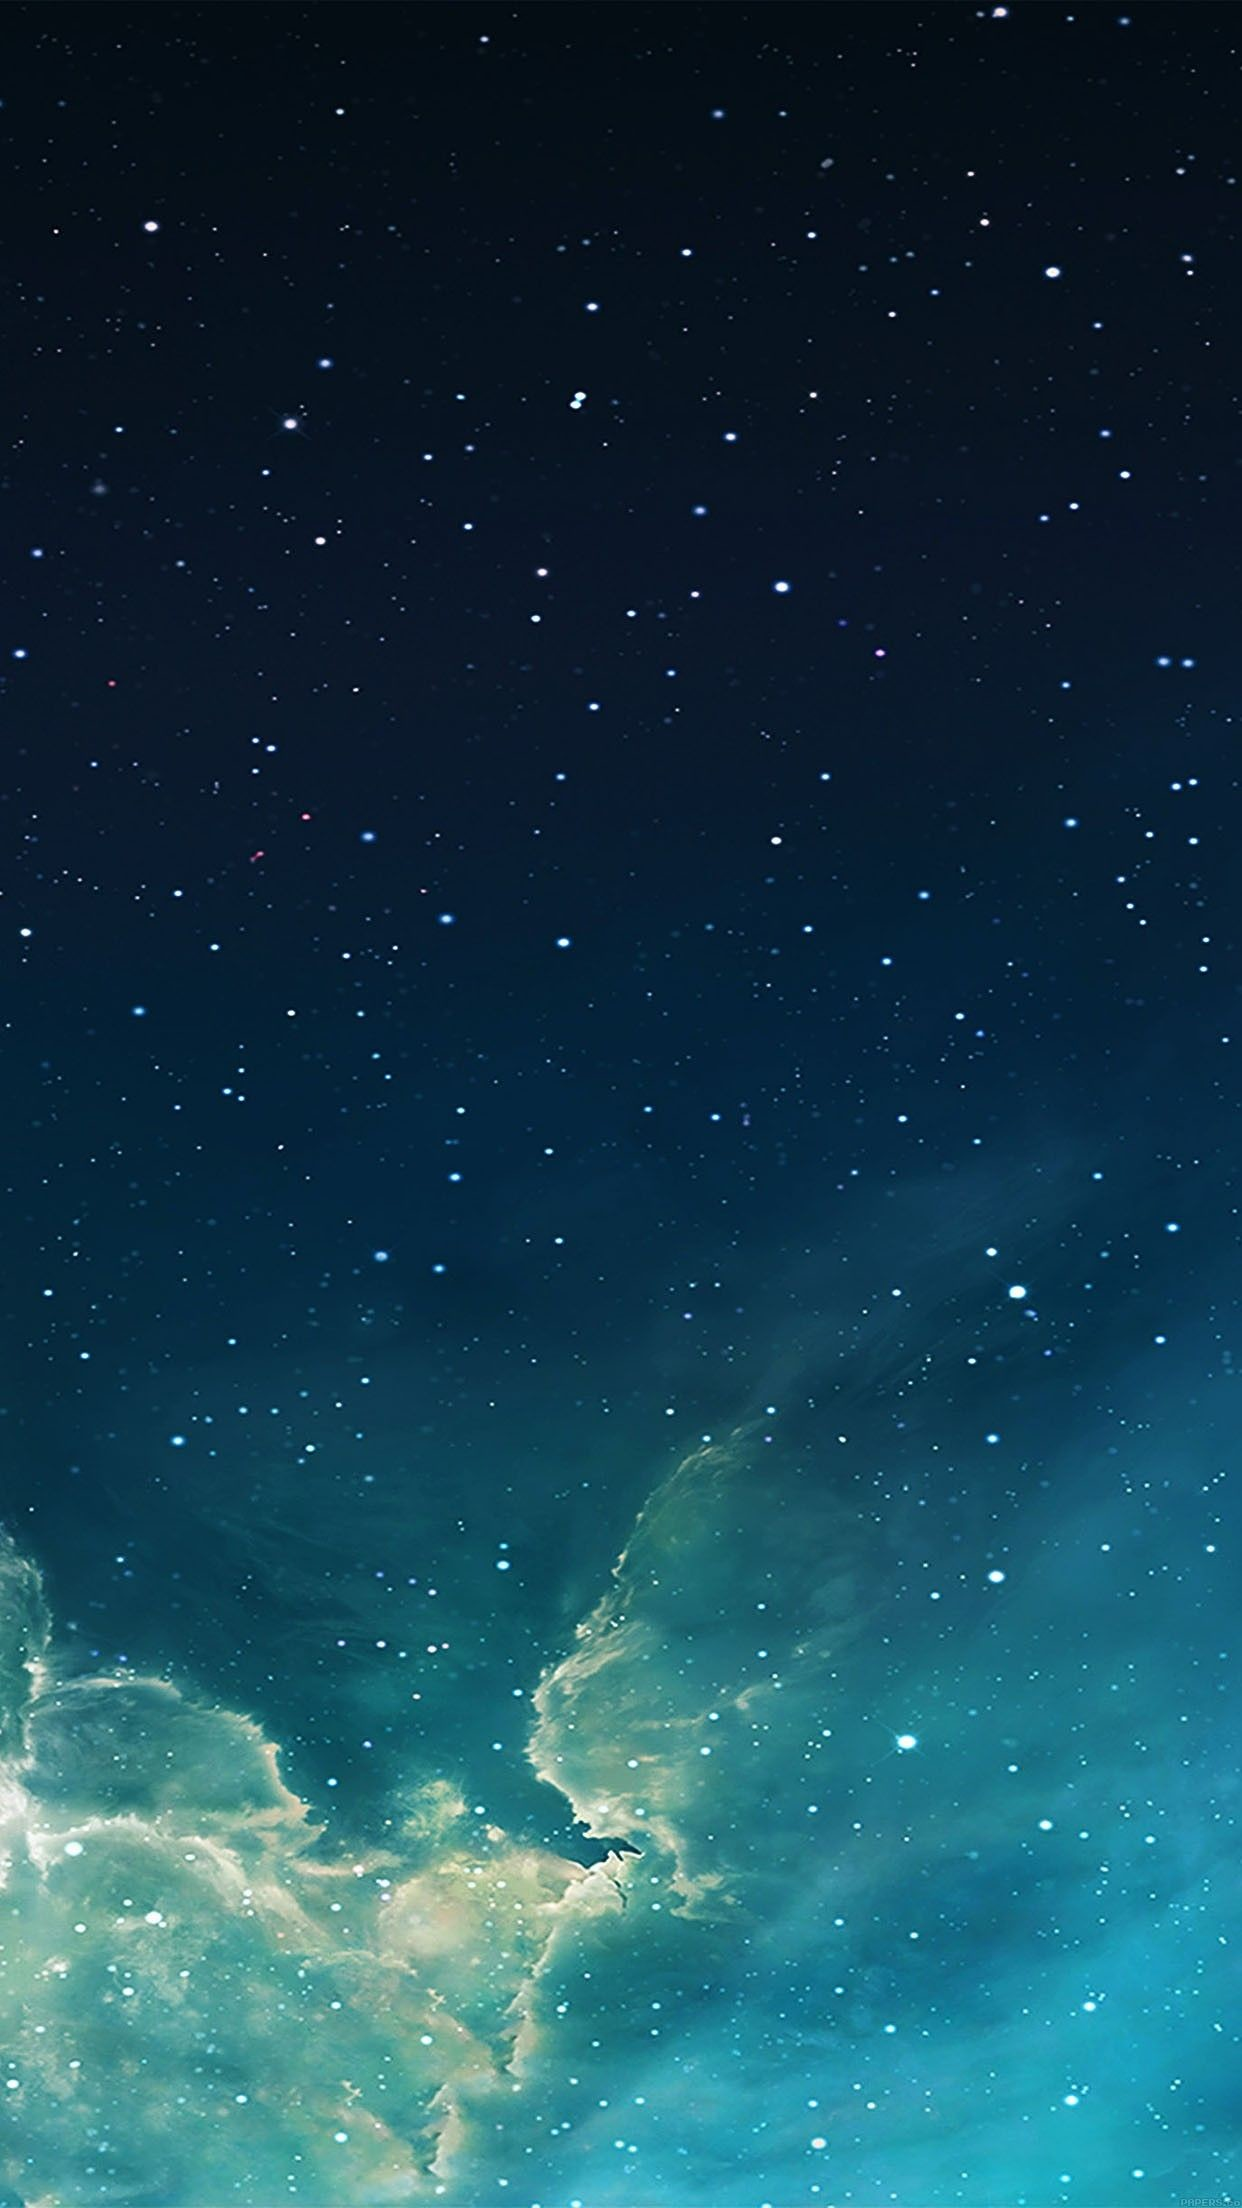 Free Download 82 Stars Iphone Wallpapers On Wallpaperplay